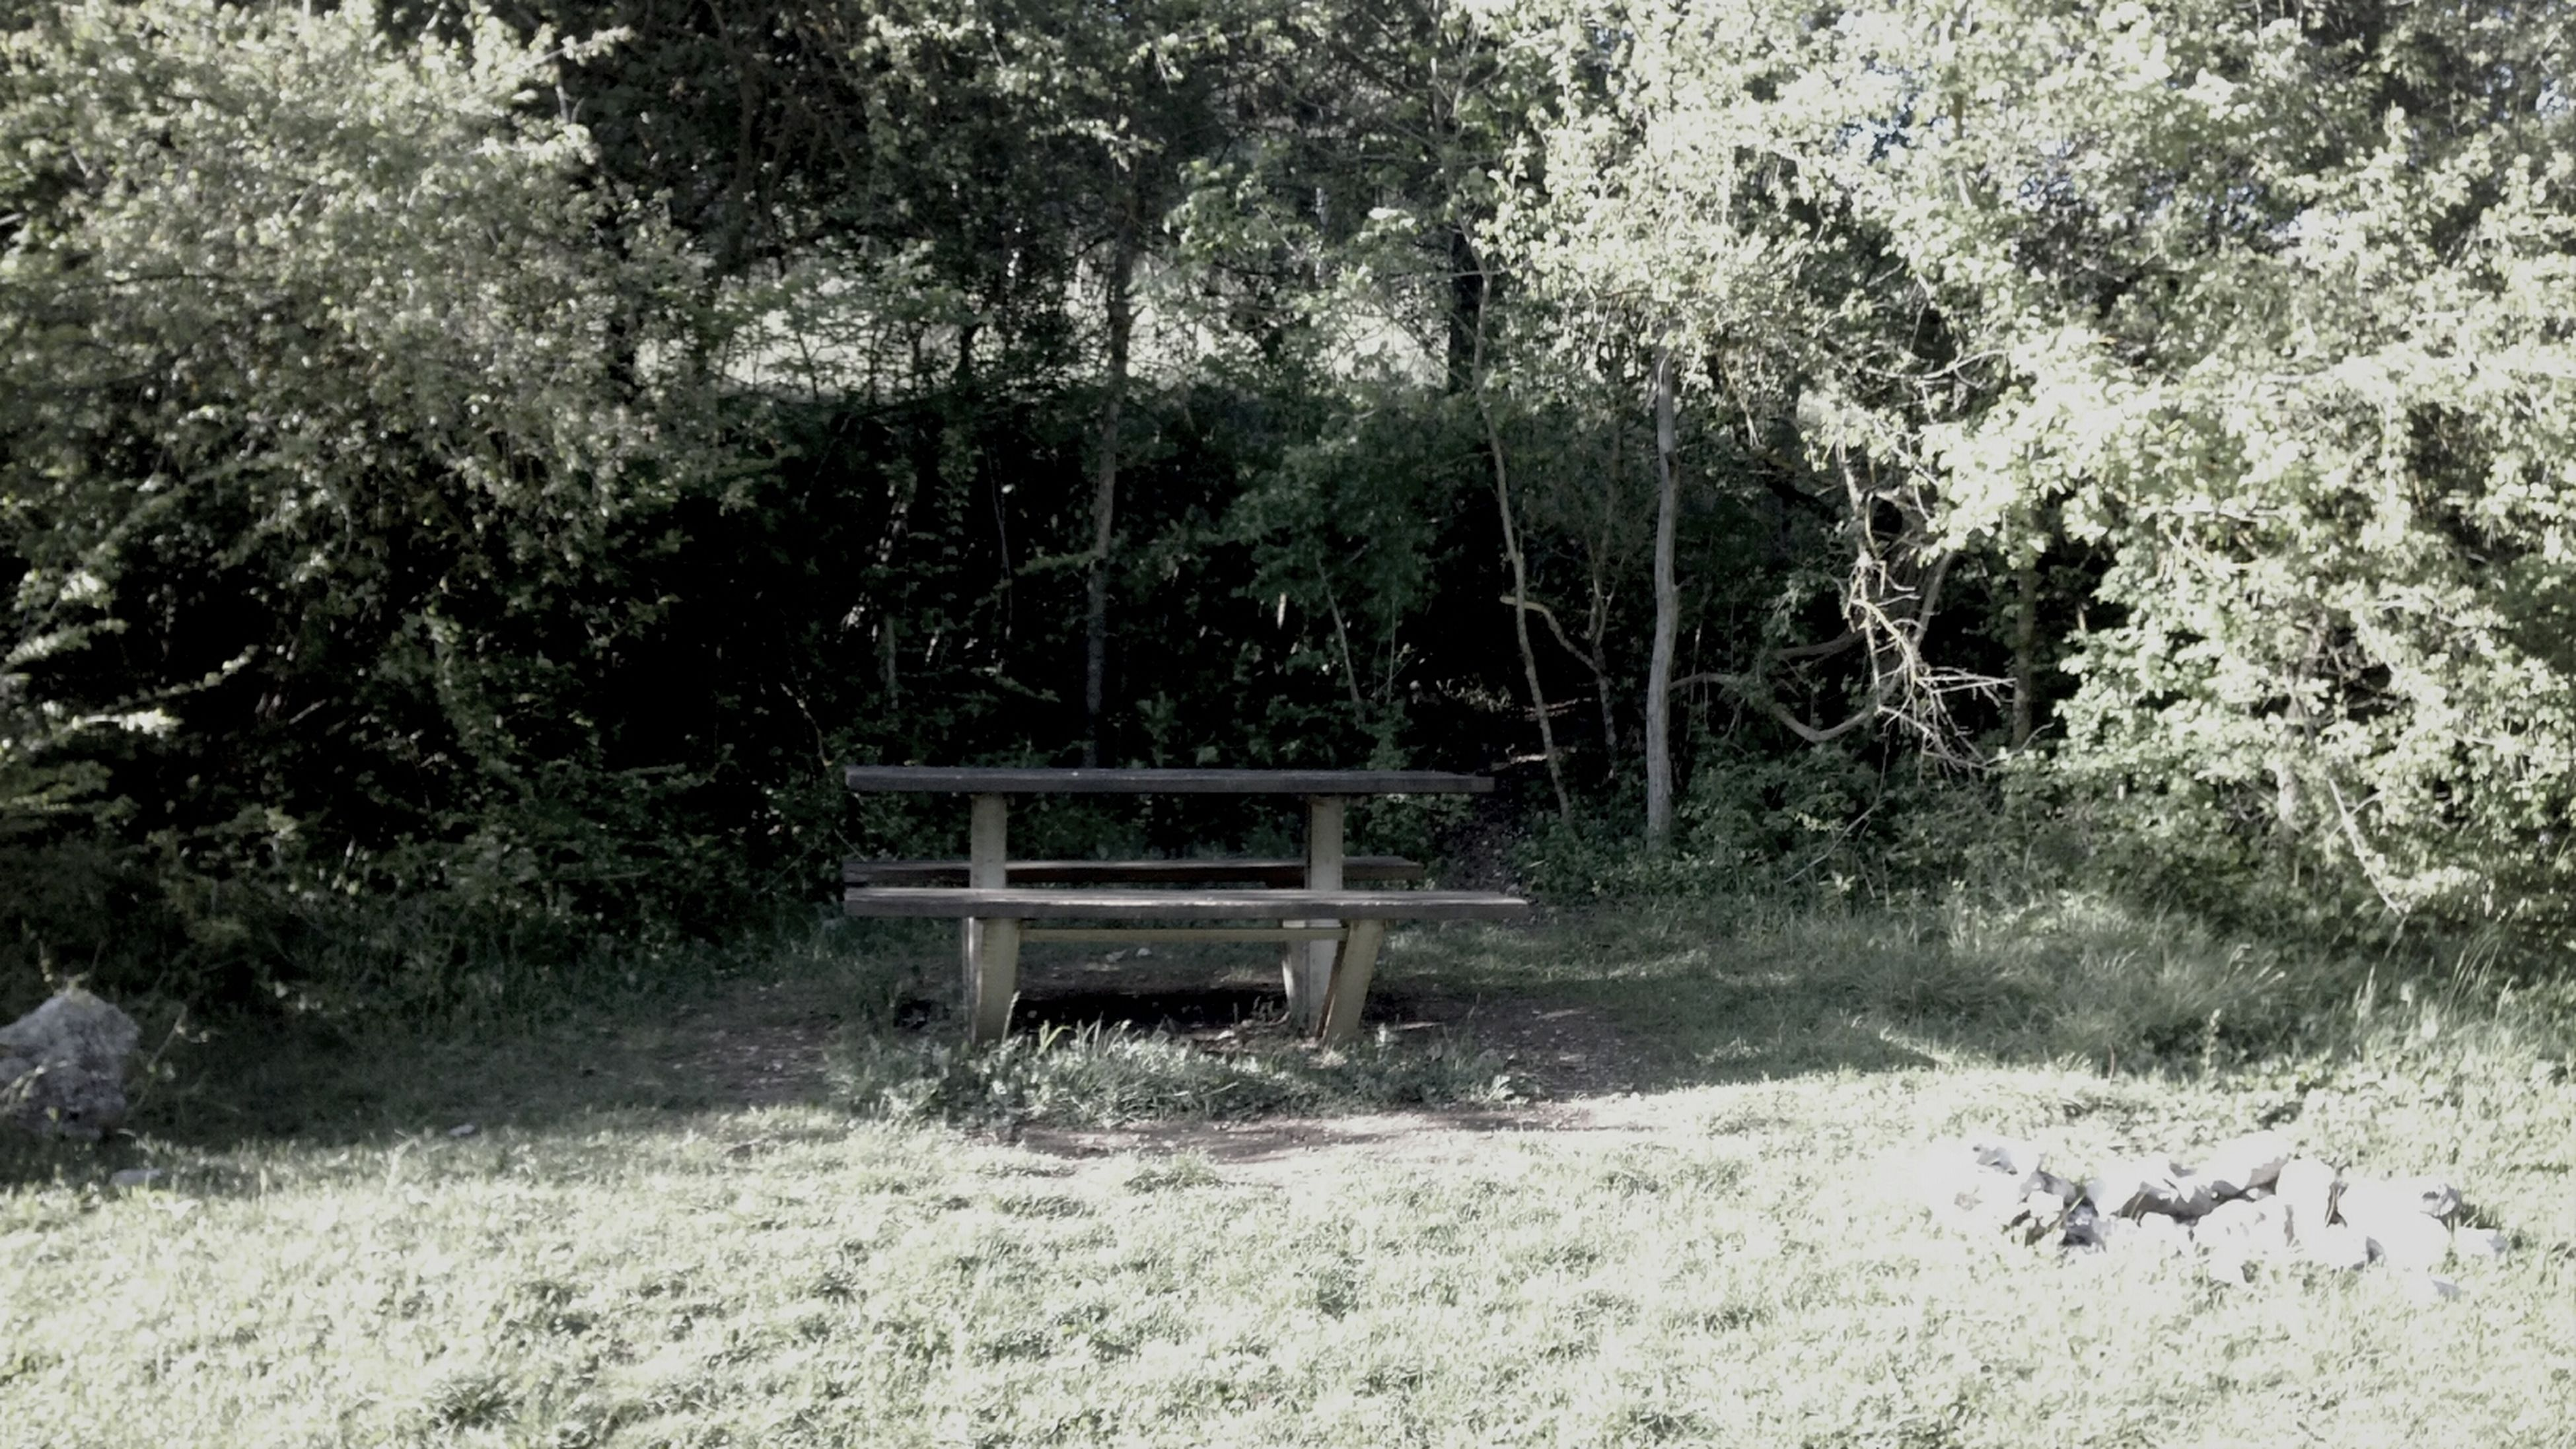 tree, wood - material, tranquility, nature, bench, growth, plant, tranquil scene, wooden, day, built structure, beauty in nature, empty, wood, outdoors, no people, absence, scenics, abandoned, grass